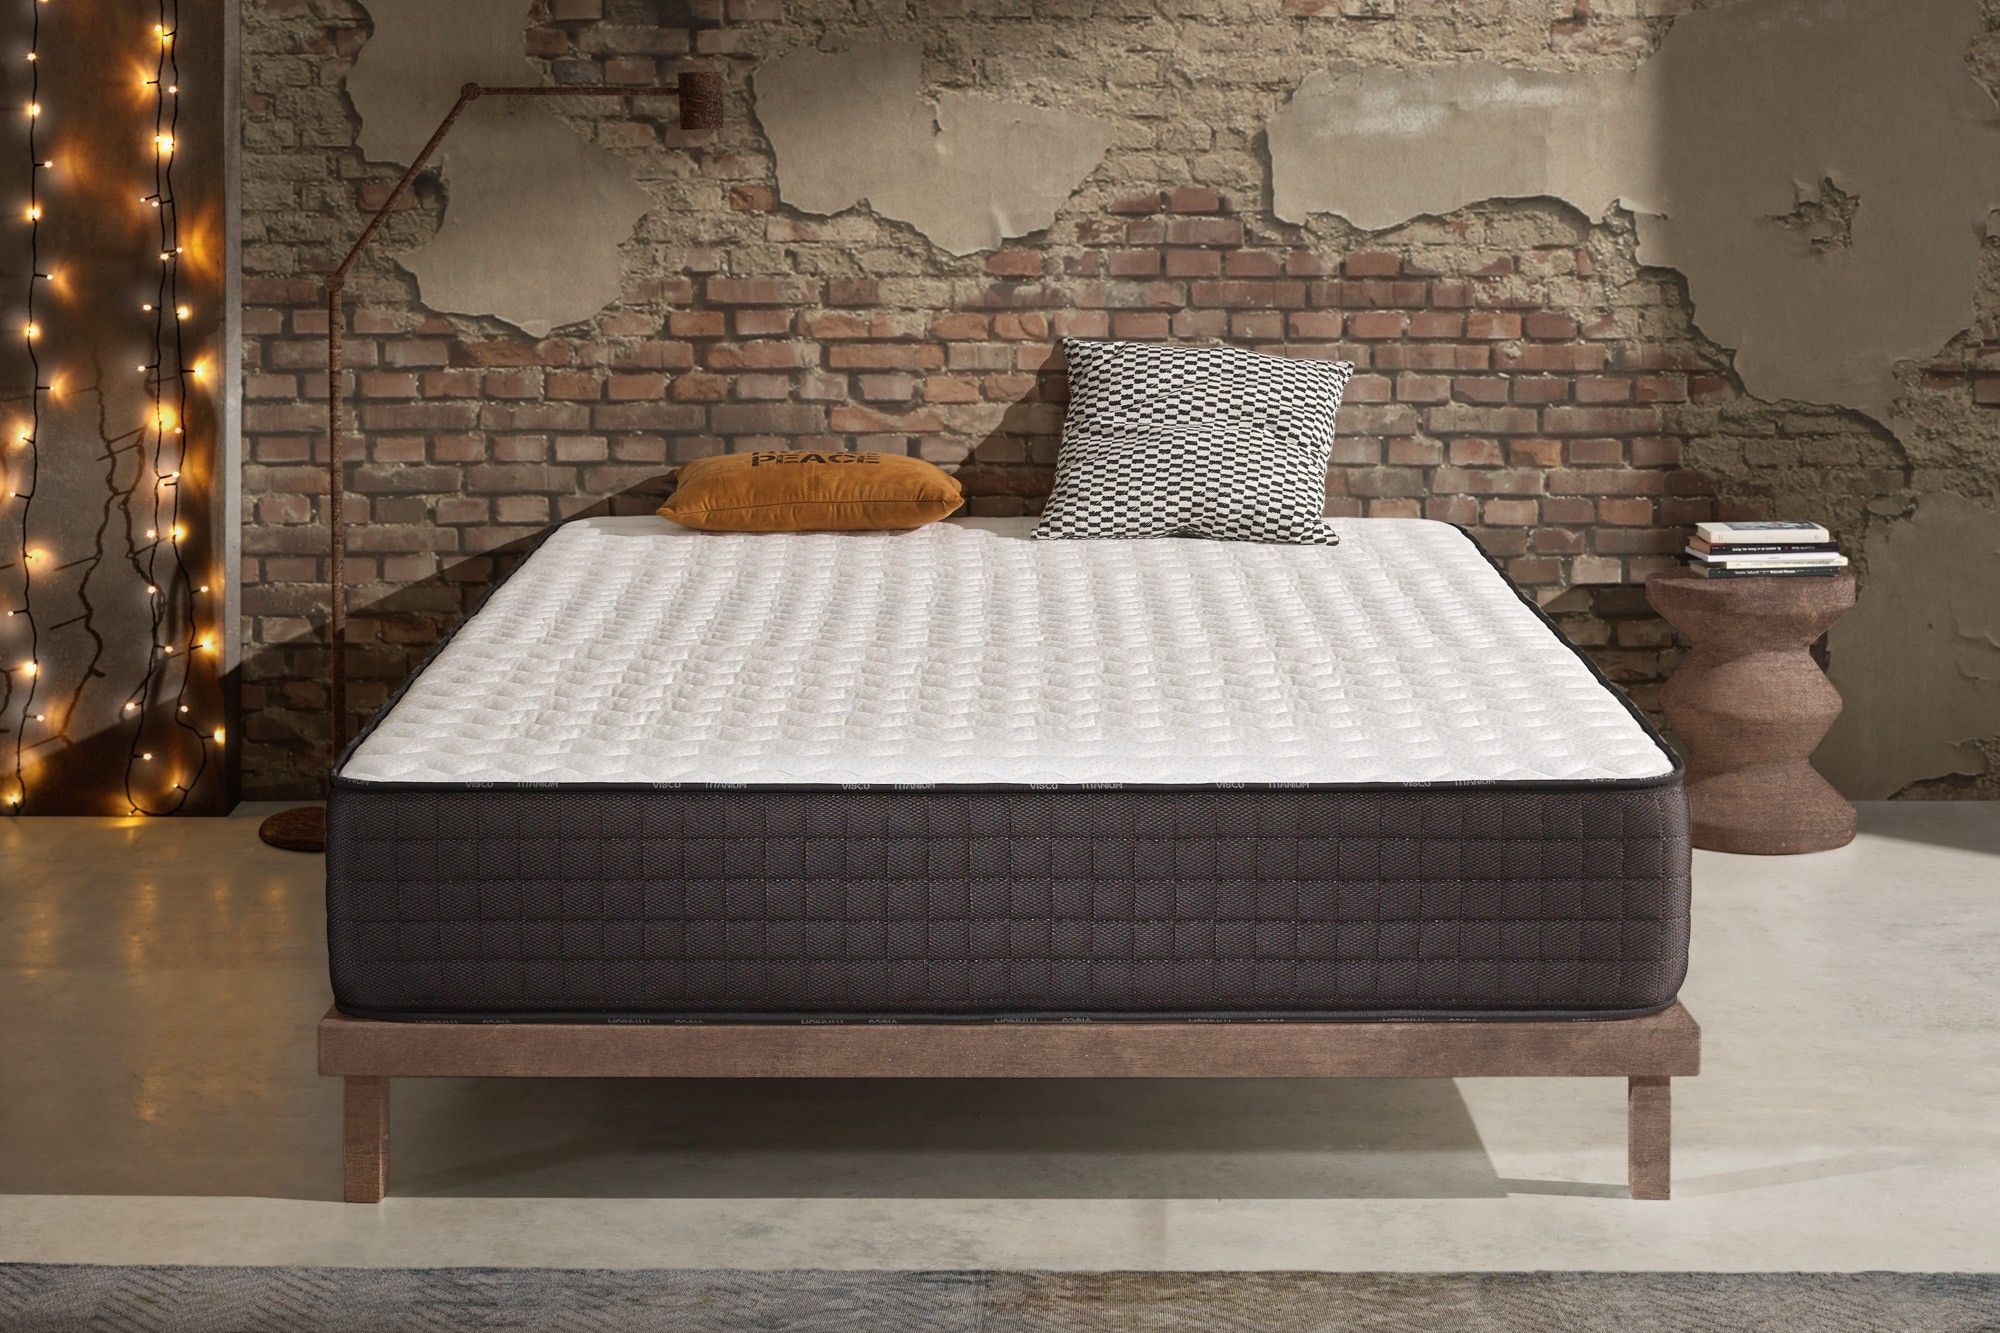 With 24 cm thickness and Naturalex ® technologies, it is ideal for people looking for a Premium mattress.